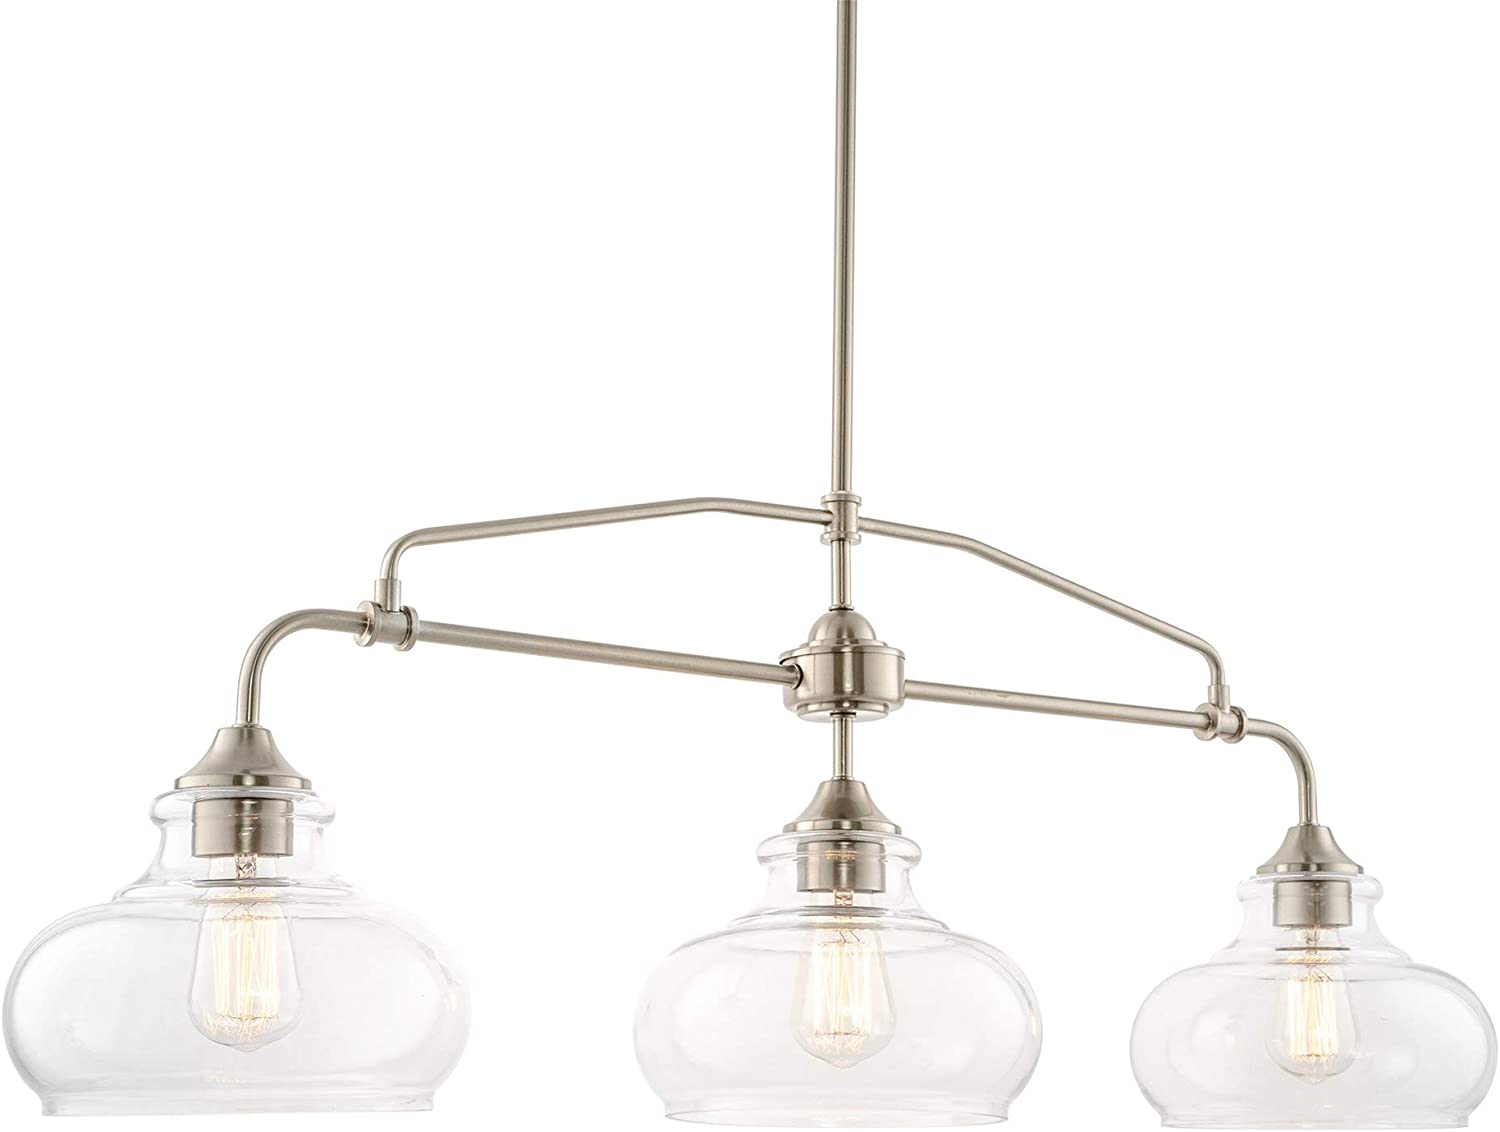 "Kira Home Harlow 37.5"" Modern Industrial Farmhouse/Schoolhouse 3-Light Island Light with Clear Glass Shades, Adjustable Hanging Height, Brushed Nickel Finish"